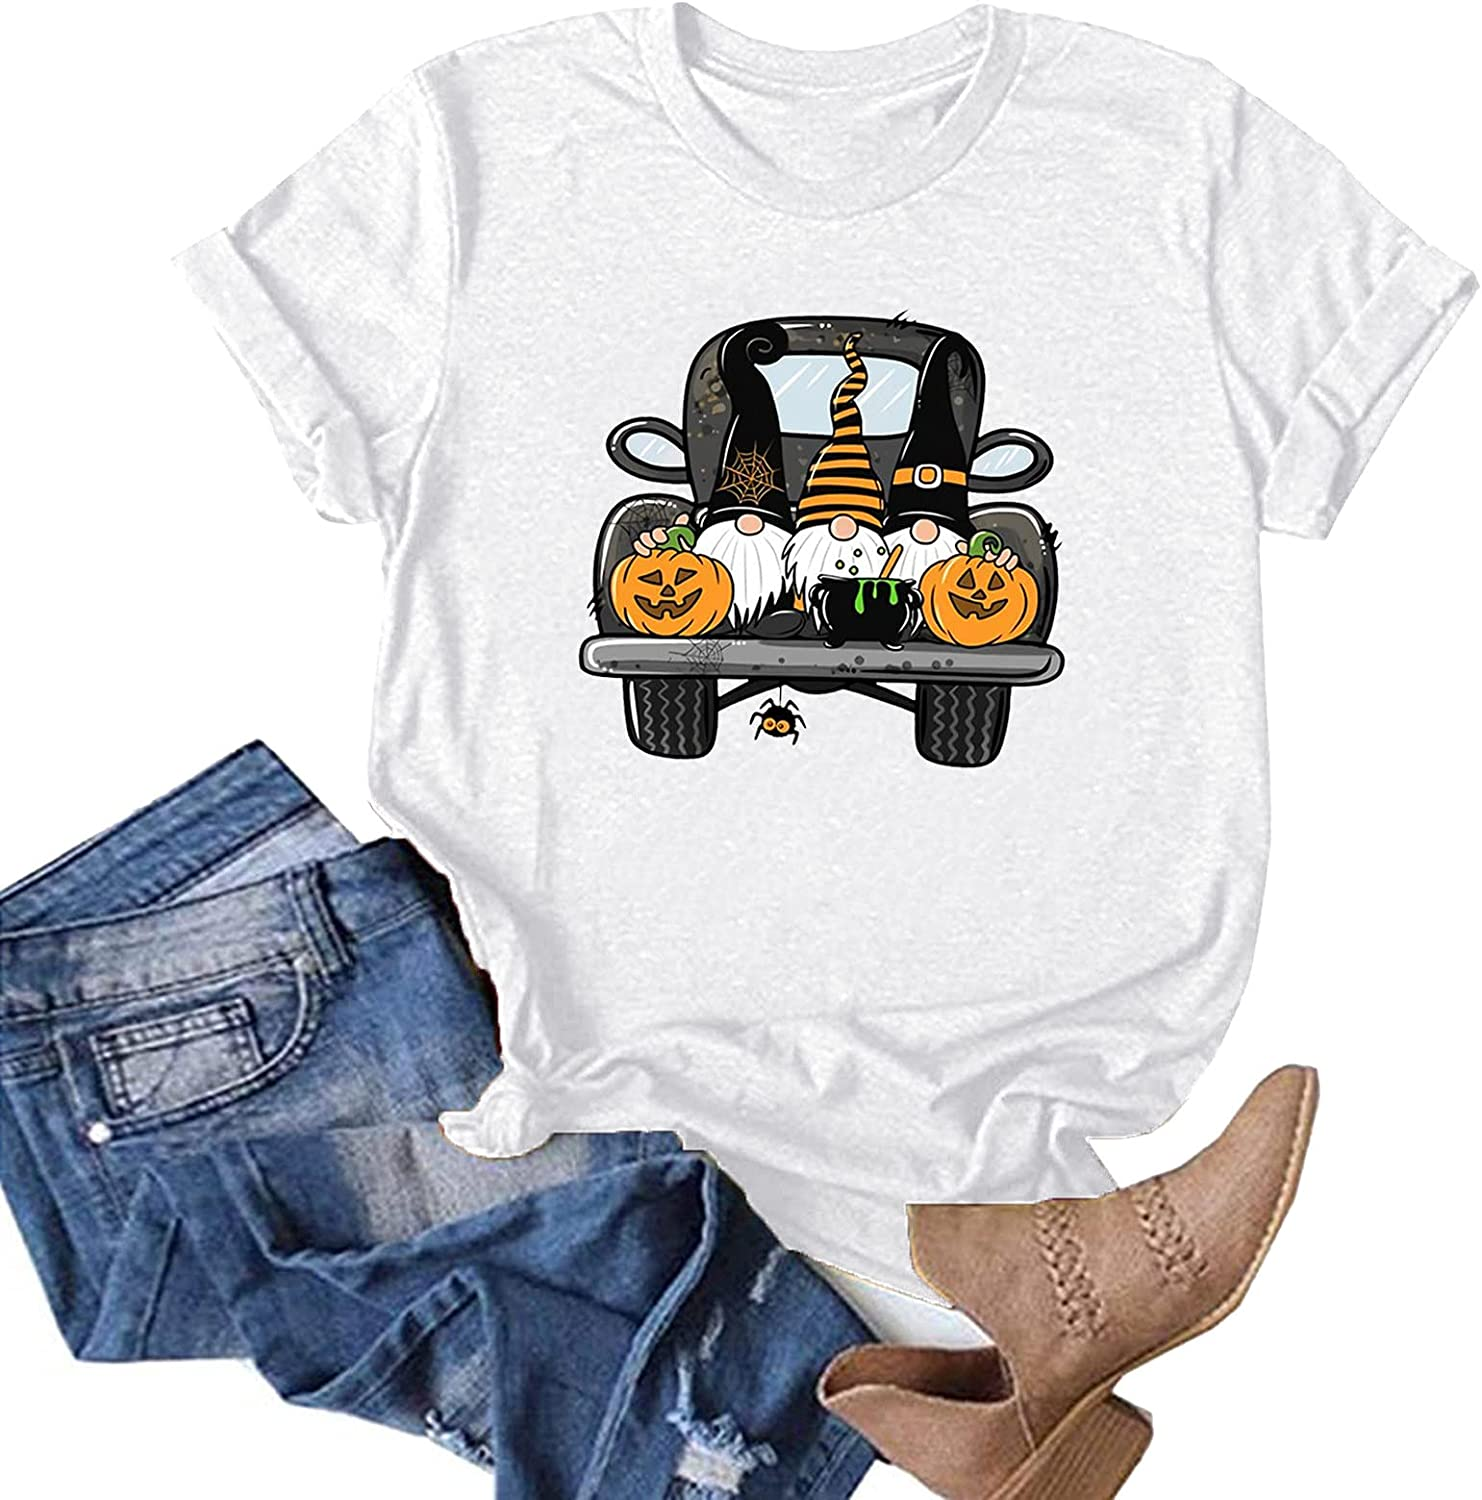 AODONG Women Halloween Shirts, Women's Halloween Tops Gnomes Printed Casual Funny Graphic T-Shirts Loose Tunic Tees